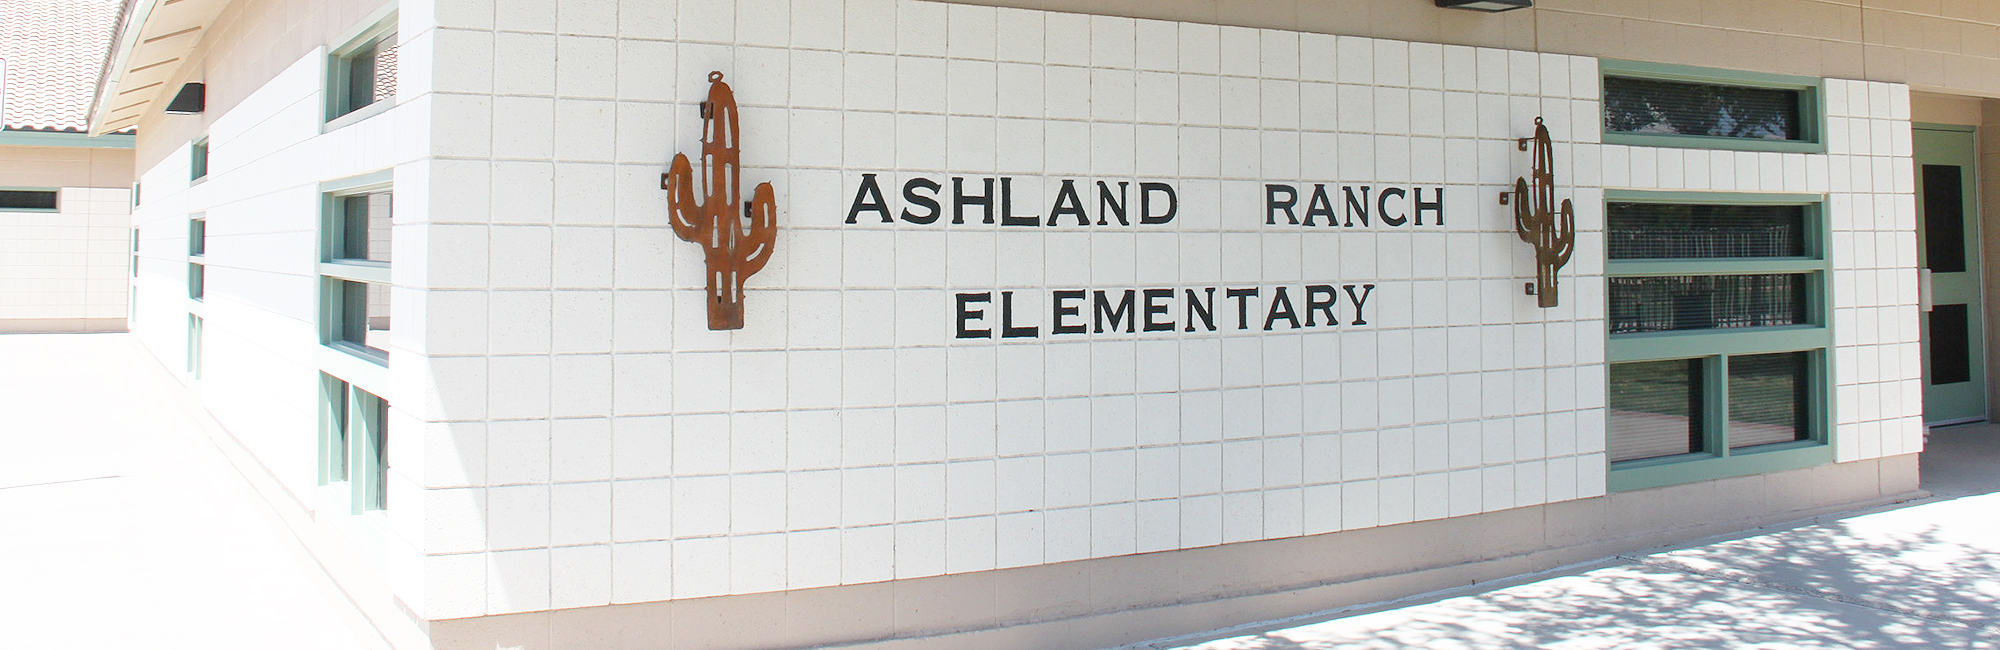 ASHLAND RANCH ELEMENTARY